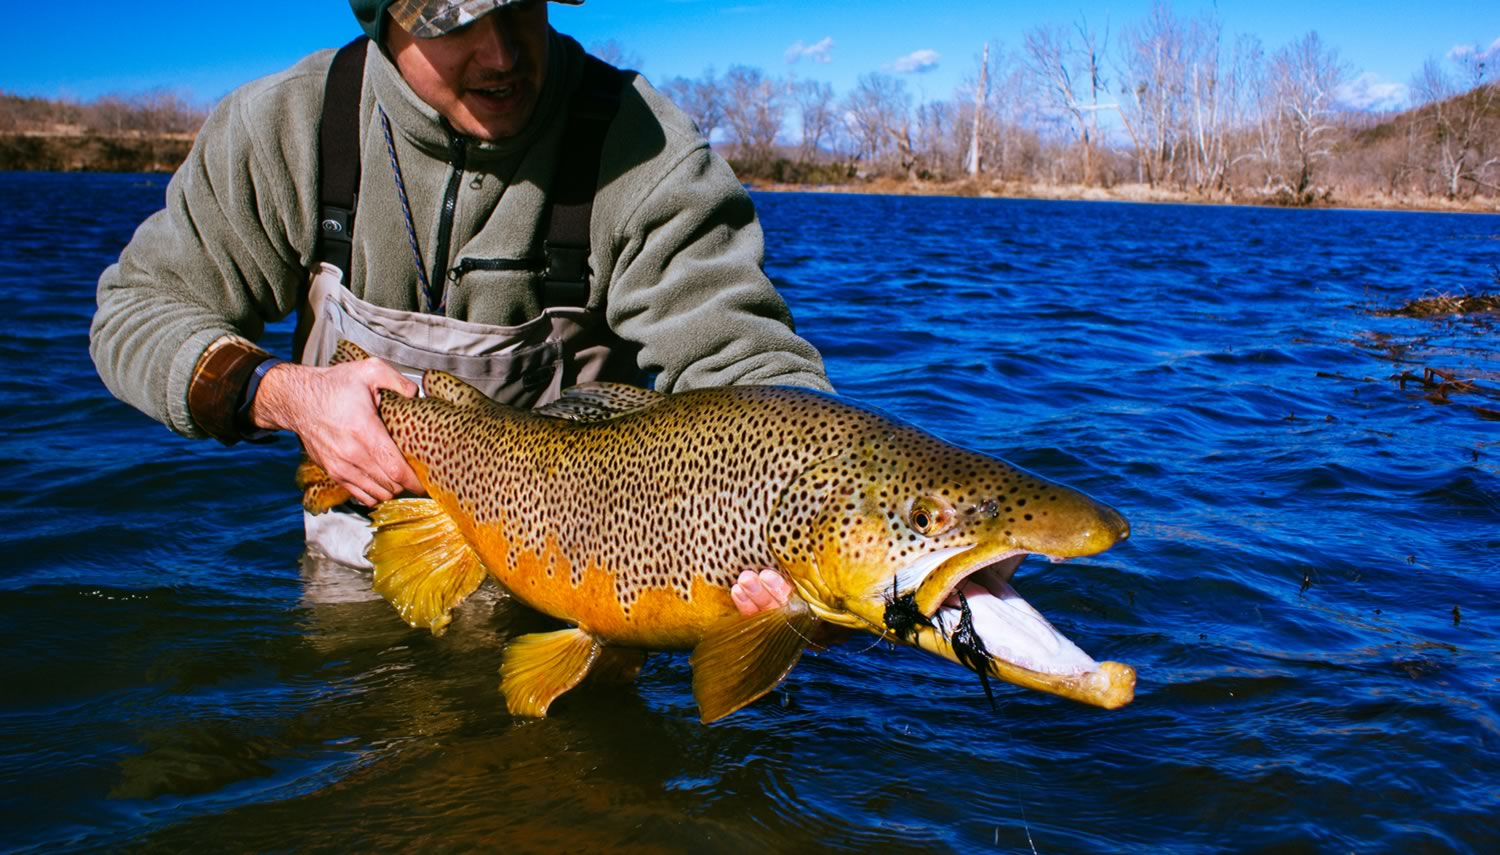 Guided Fly Fishing Trips - Dally's Ozark Fly Fisher